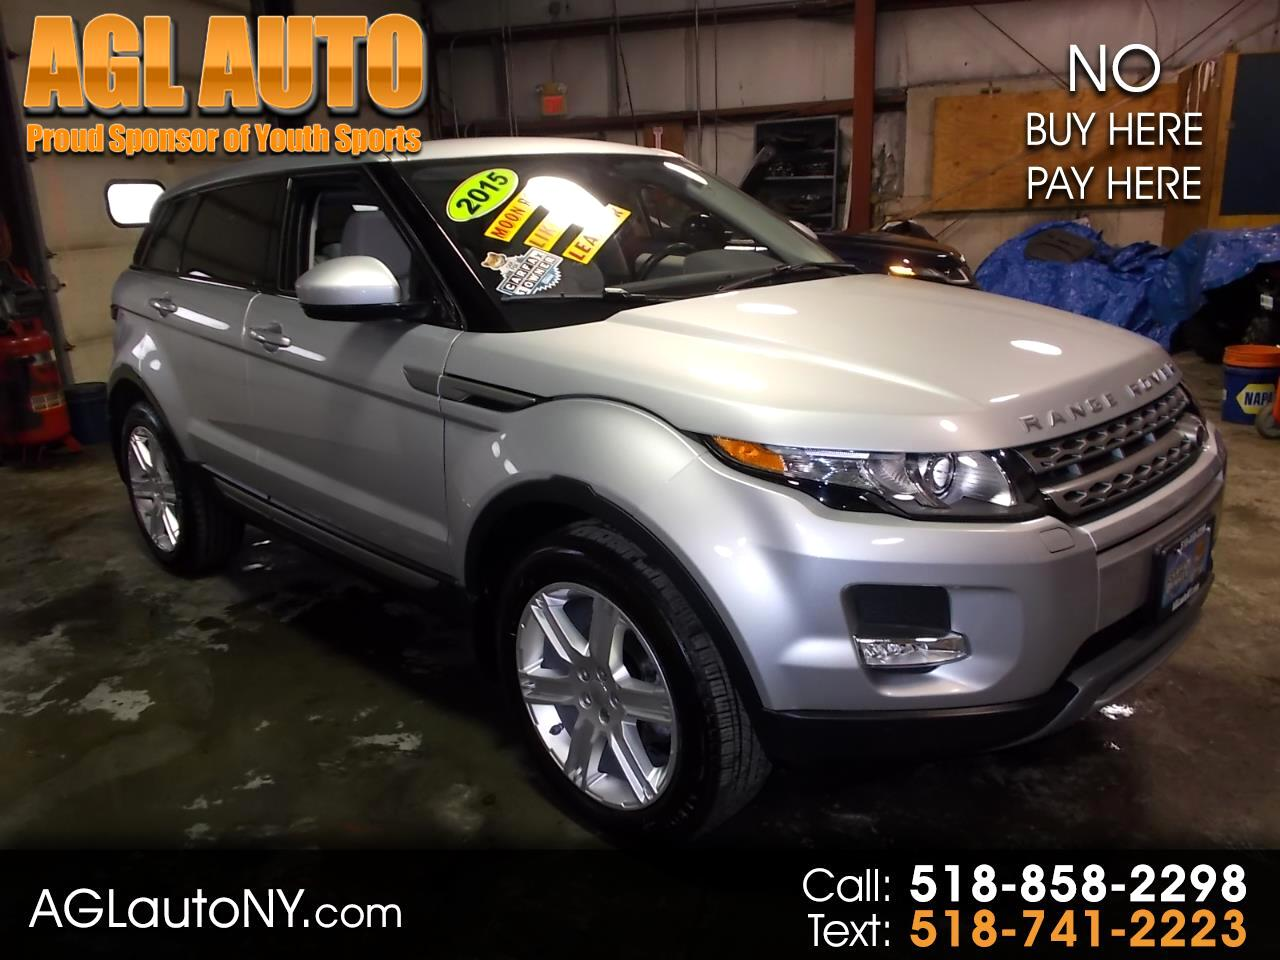 Land Rover Range Rover Evoque 5dr HB Pure Plus 2015